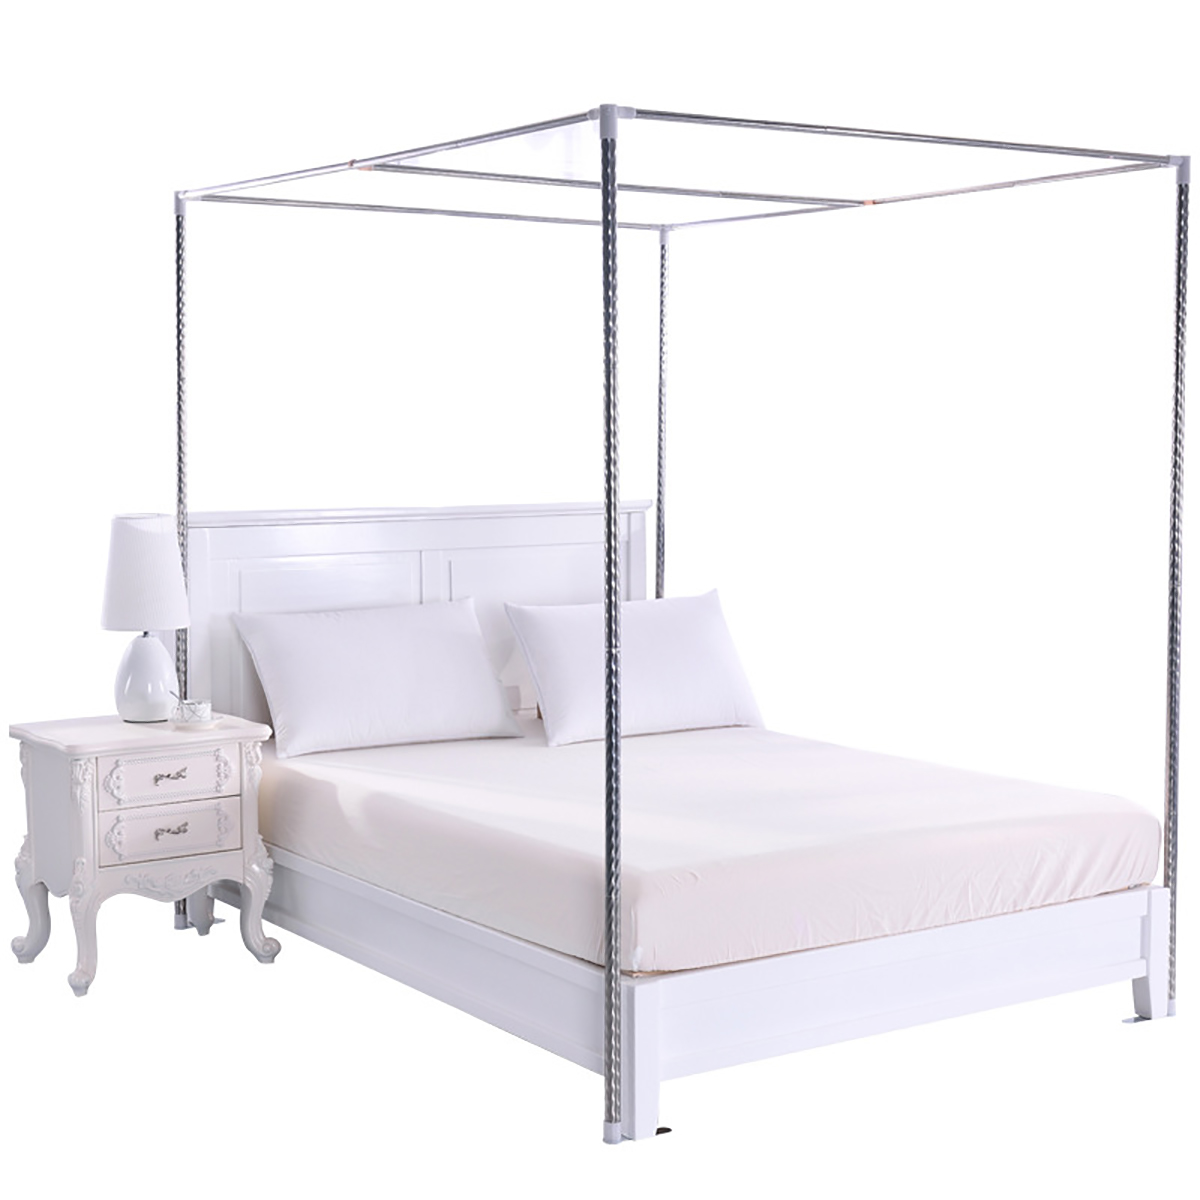 4 corner post bed canopy mosquito